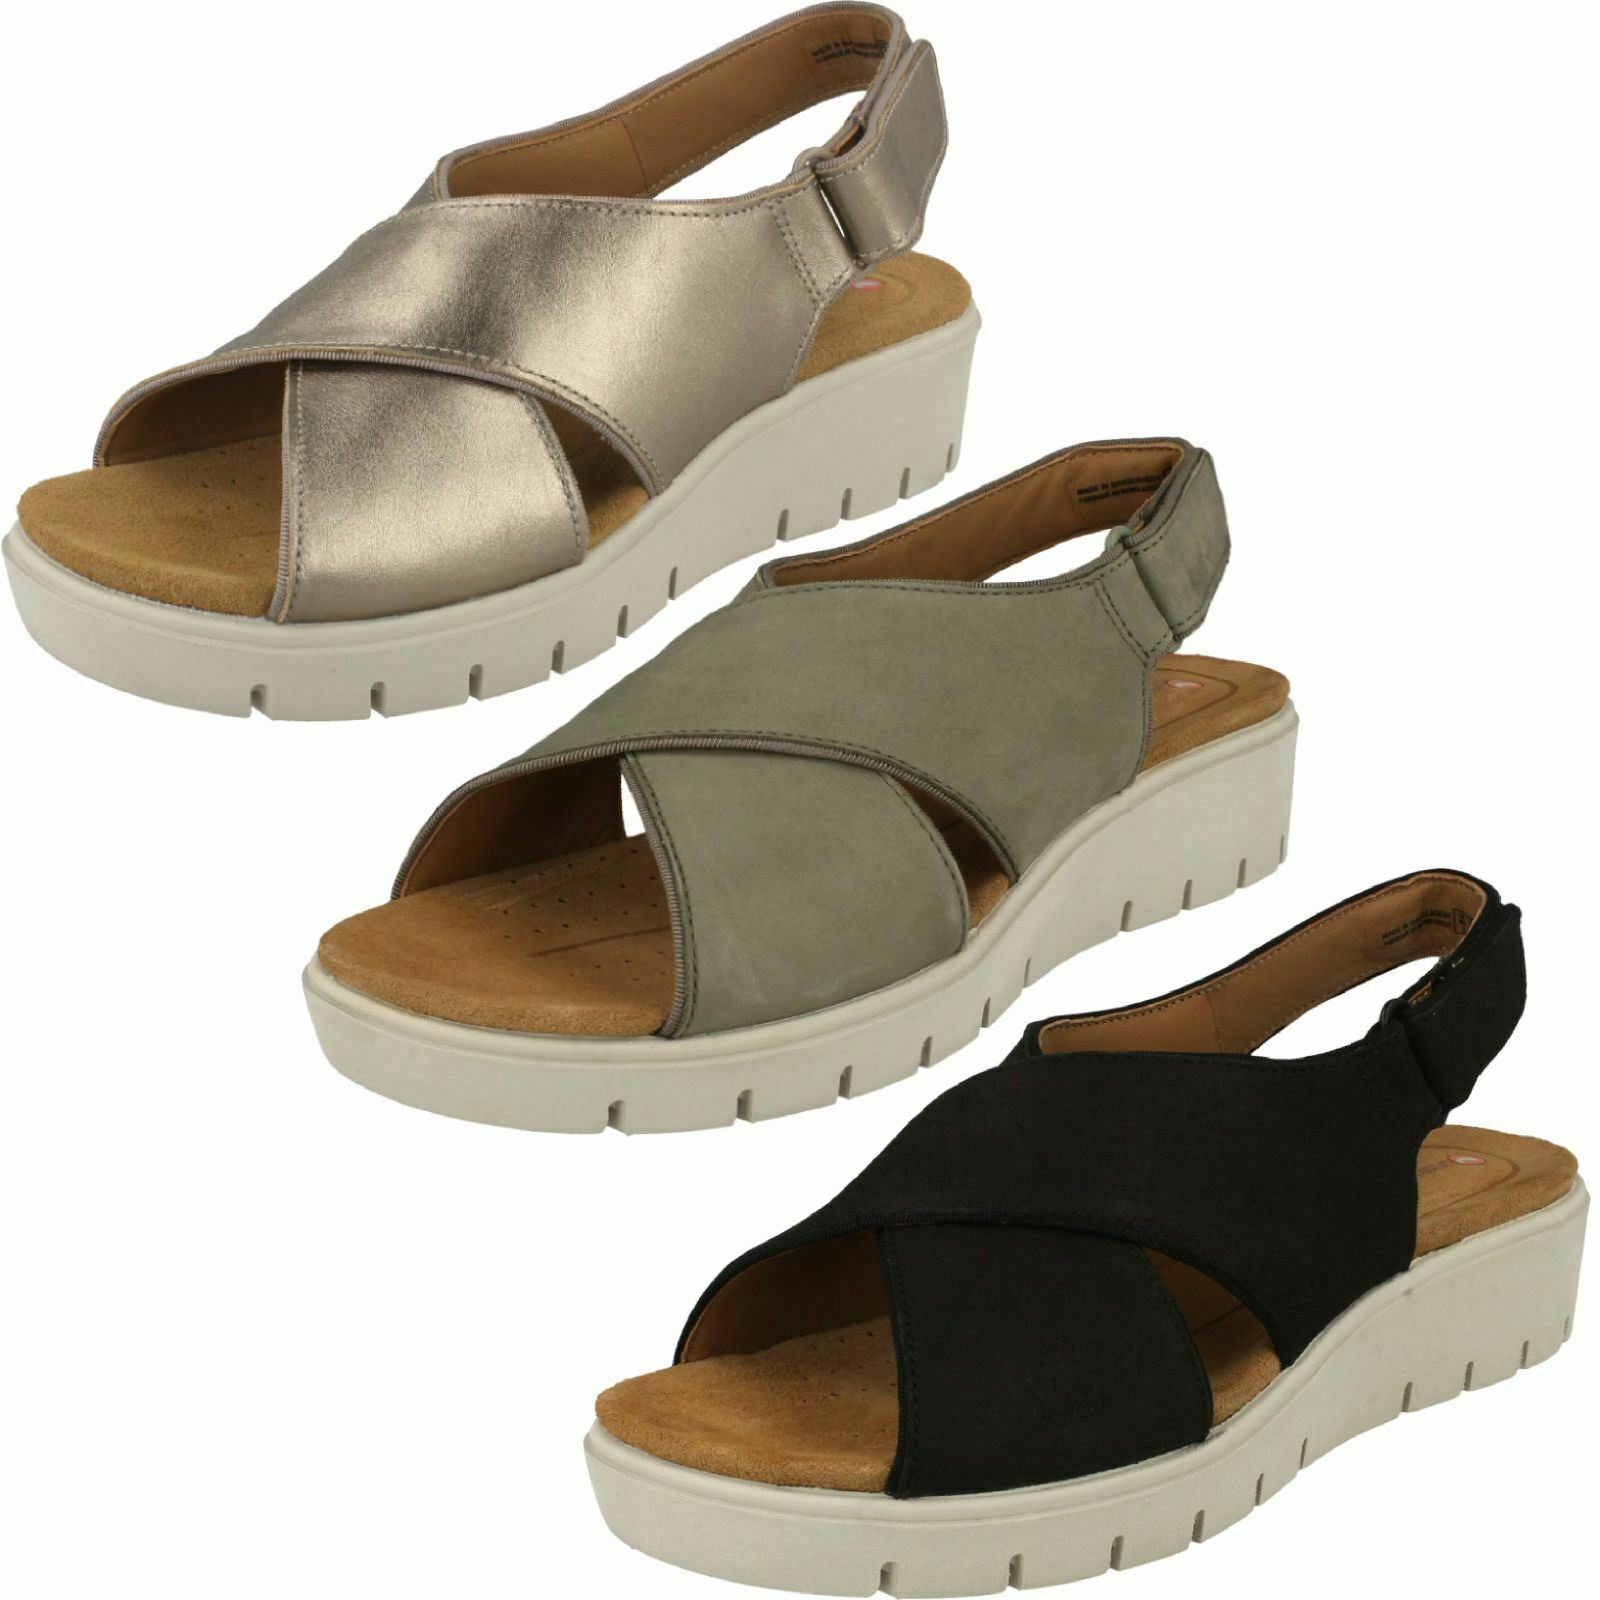 Ladies Clarks Unstructured Wedged Hook & Loop Leather Sandals Un Karely Sun